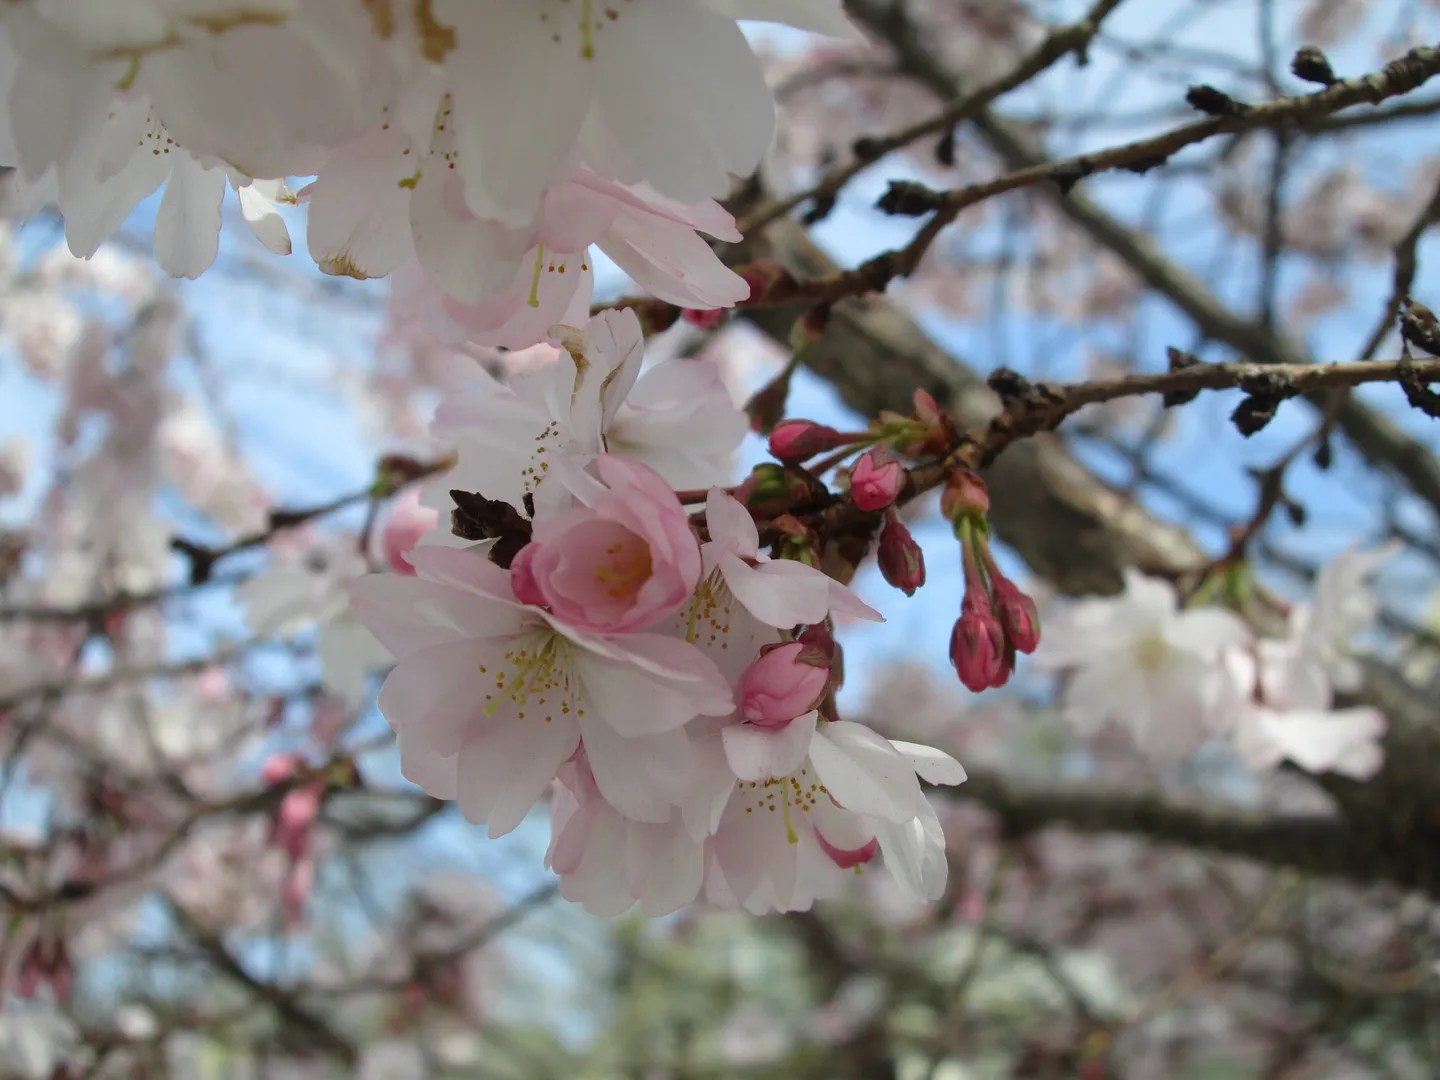 close-up of pink and white cherry blossoms